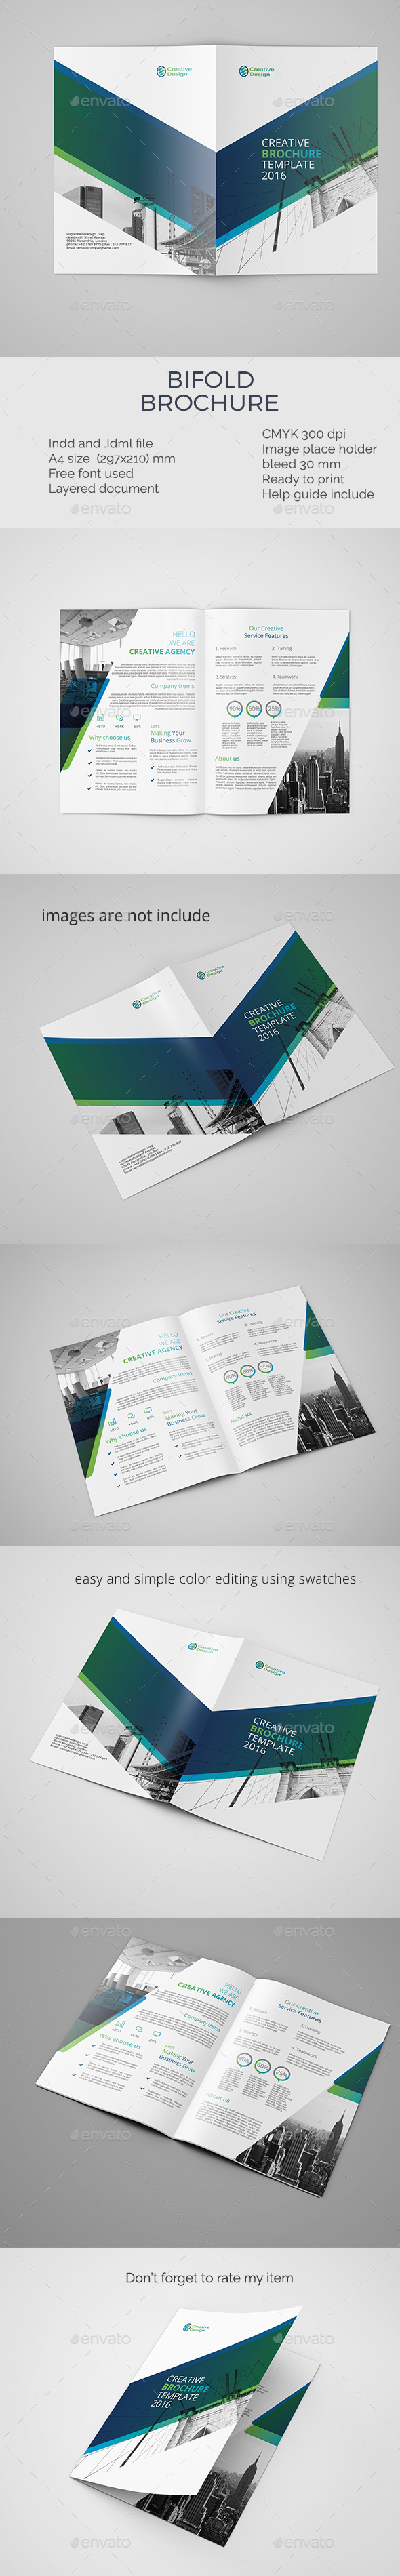 corporate bifold brochure template - Corporate Brochures